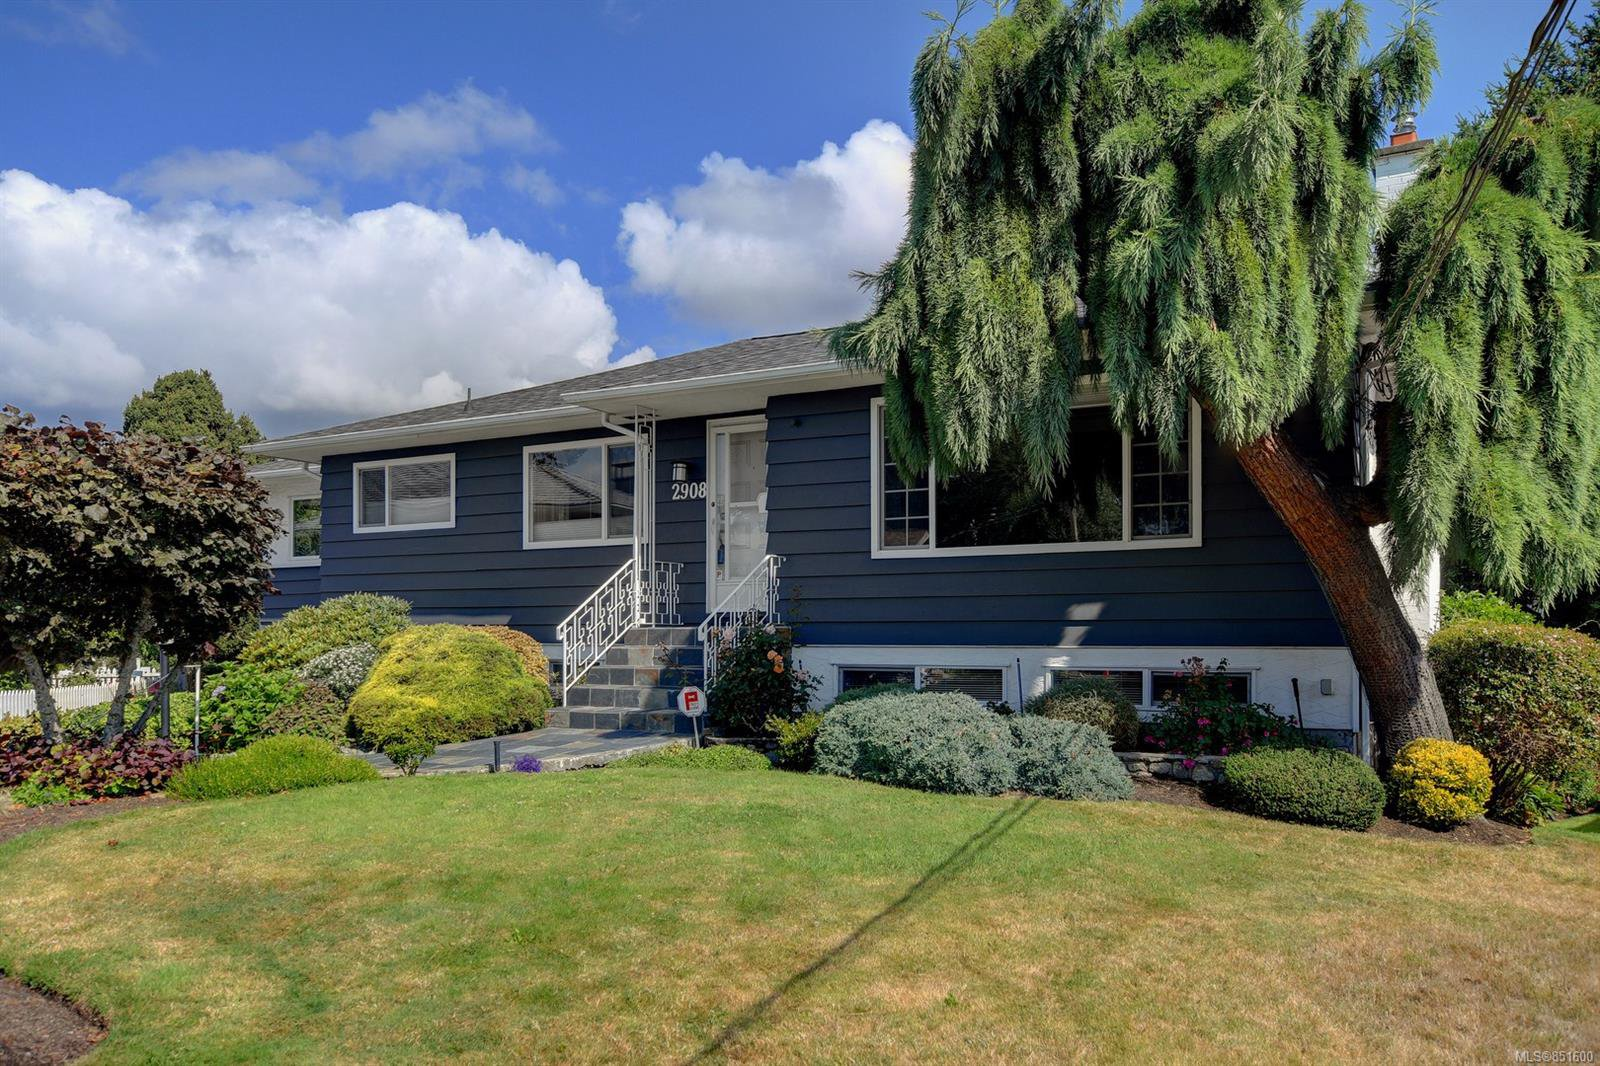 Main Photo: 2908 Stubbs Pl in : SW Gorge House for sale (Saanich West)  : MLS®# 851600